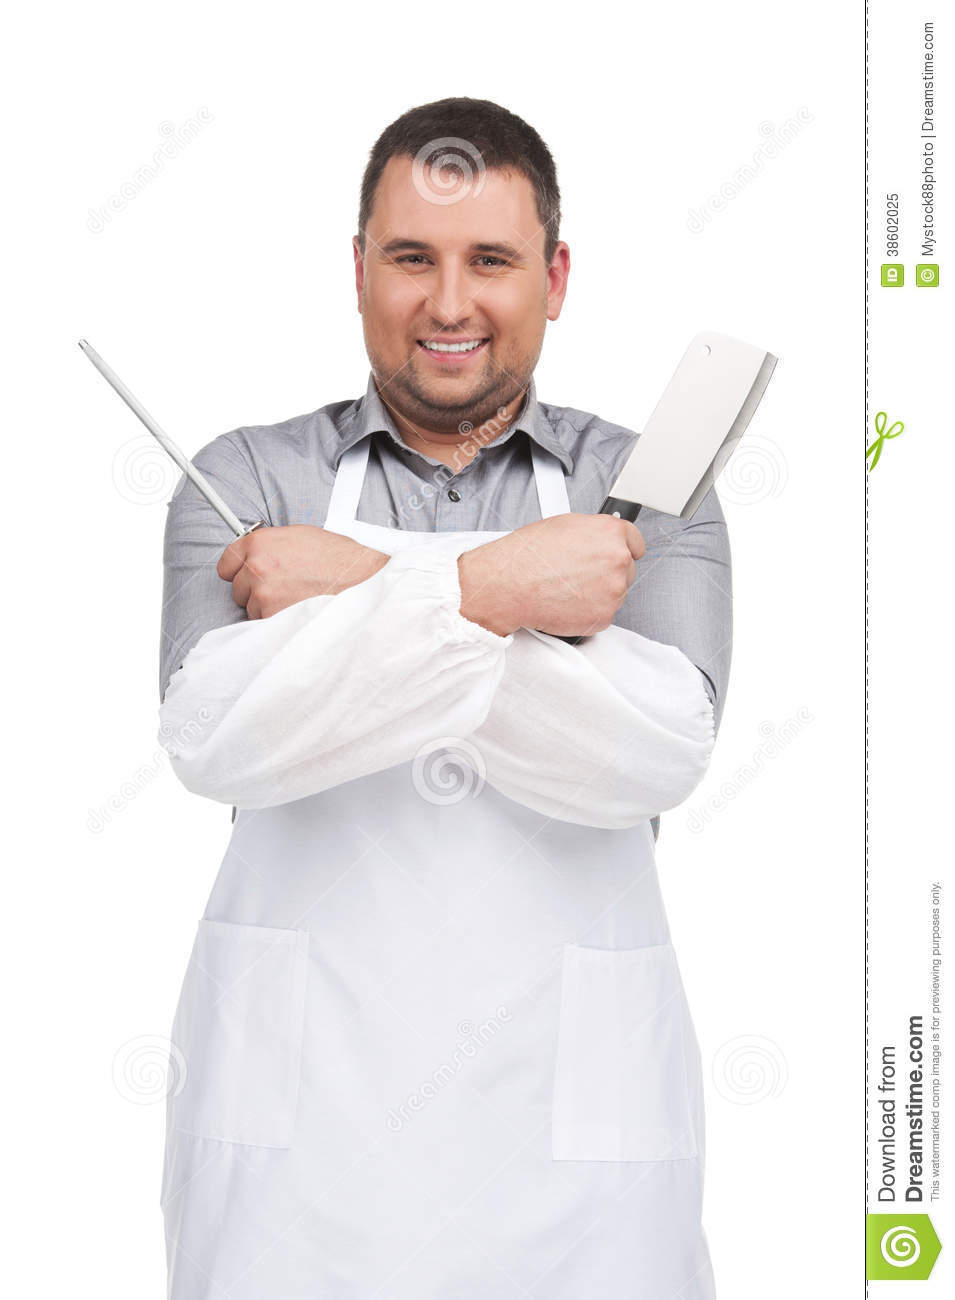 Benny The Butcher Man Of The Kitchen Instrumental : Man Wearing Apron Holding Knife. Royalty Free Stock Photo - Image: 38602025